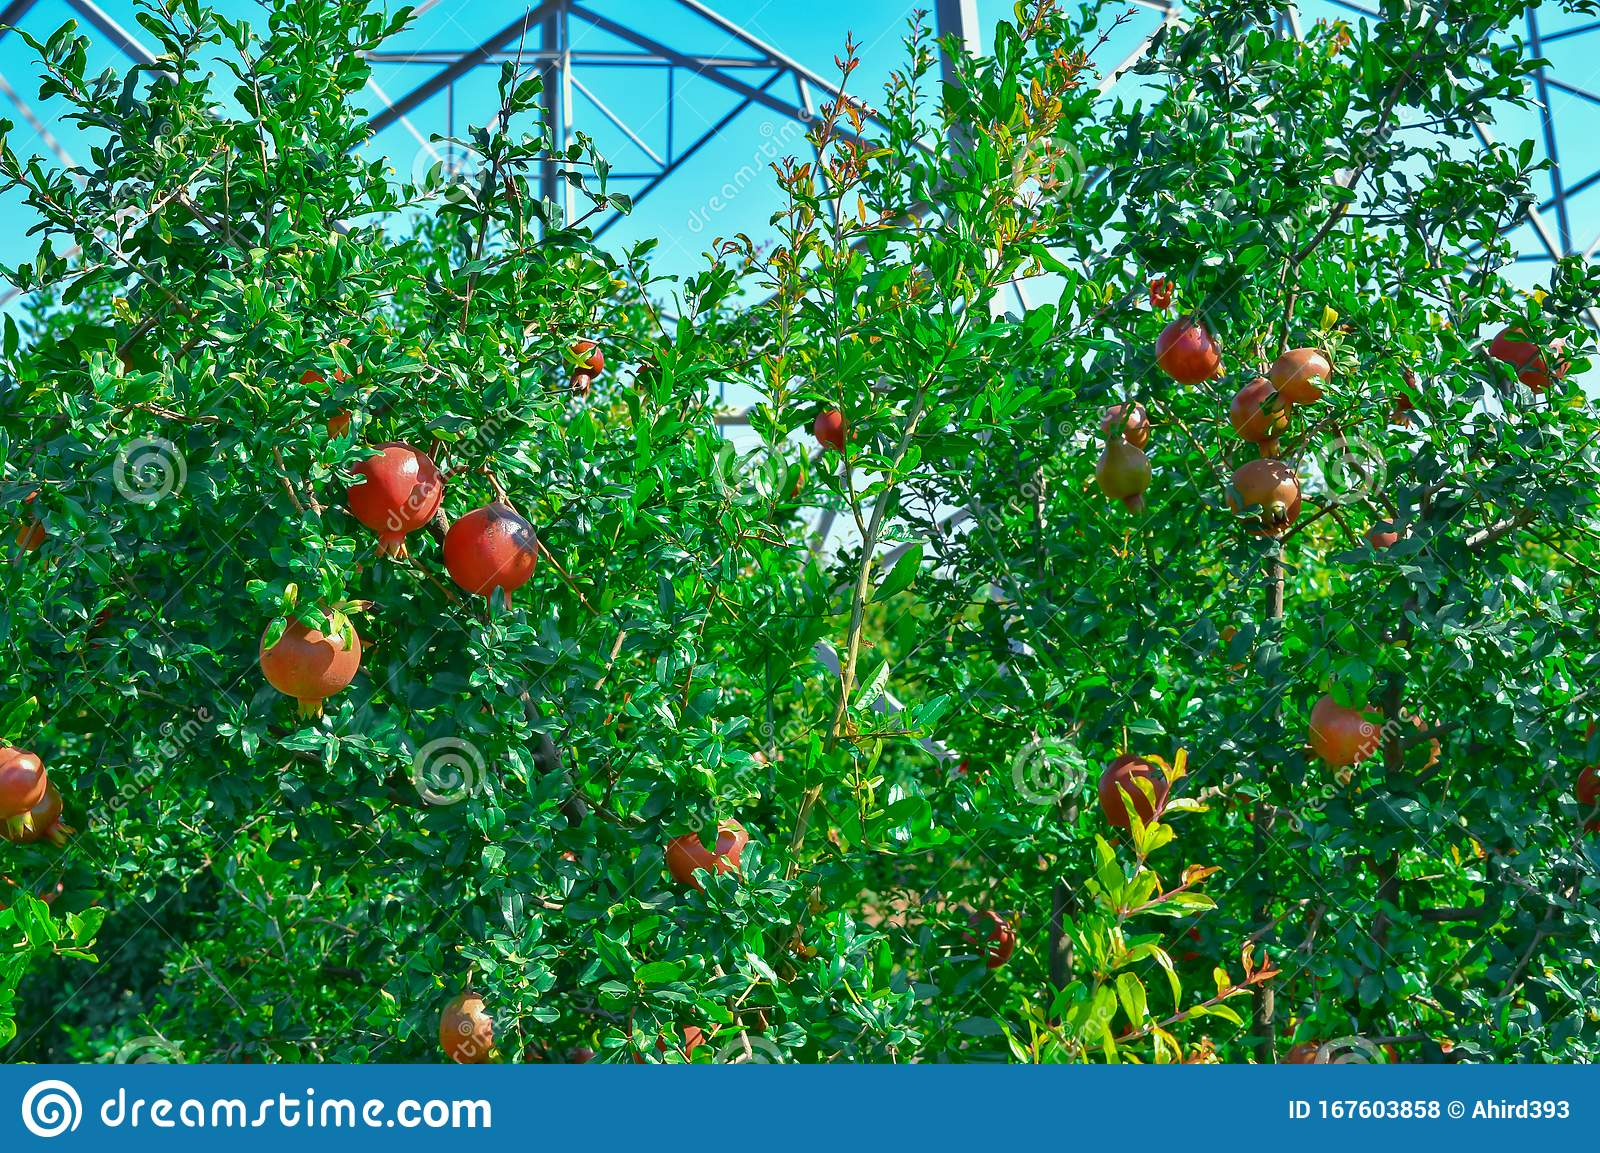 Spectacular Ripe Pomegranate Autumn Garden Big And Beautiful Pomegranate Fruits On Trees Pomegranate Garden Stock Photo Image Of Colorful Background 167603858